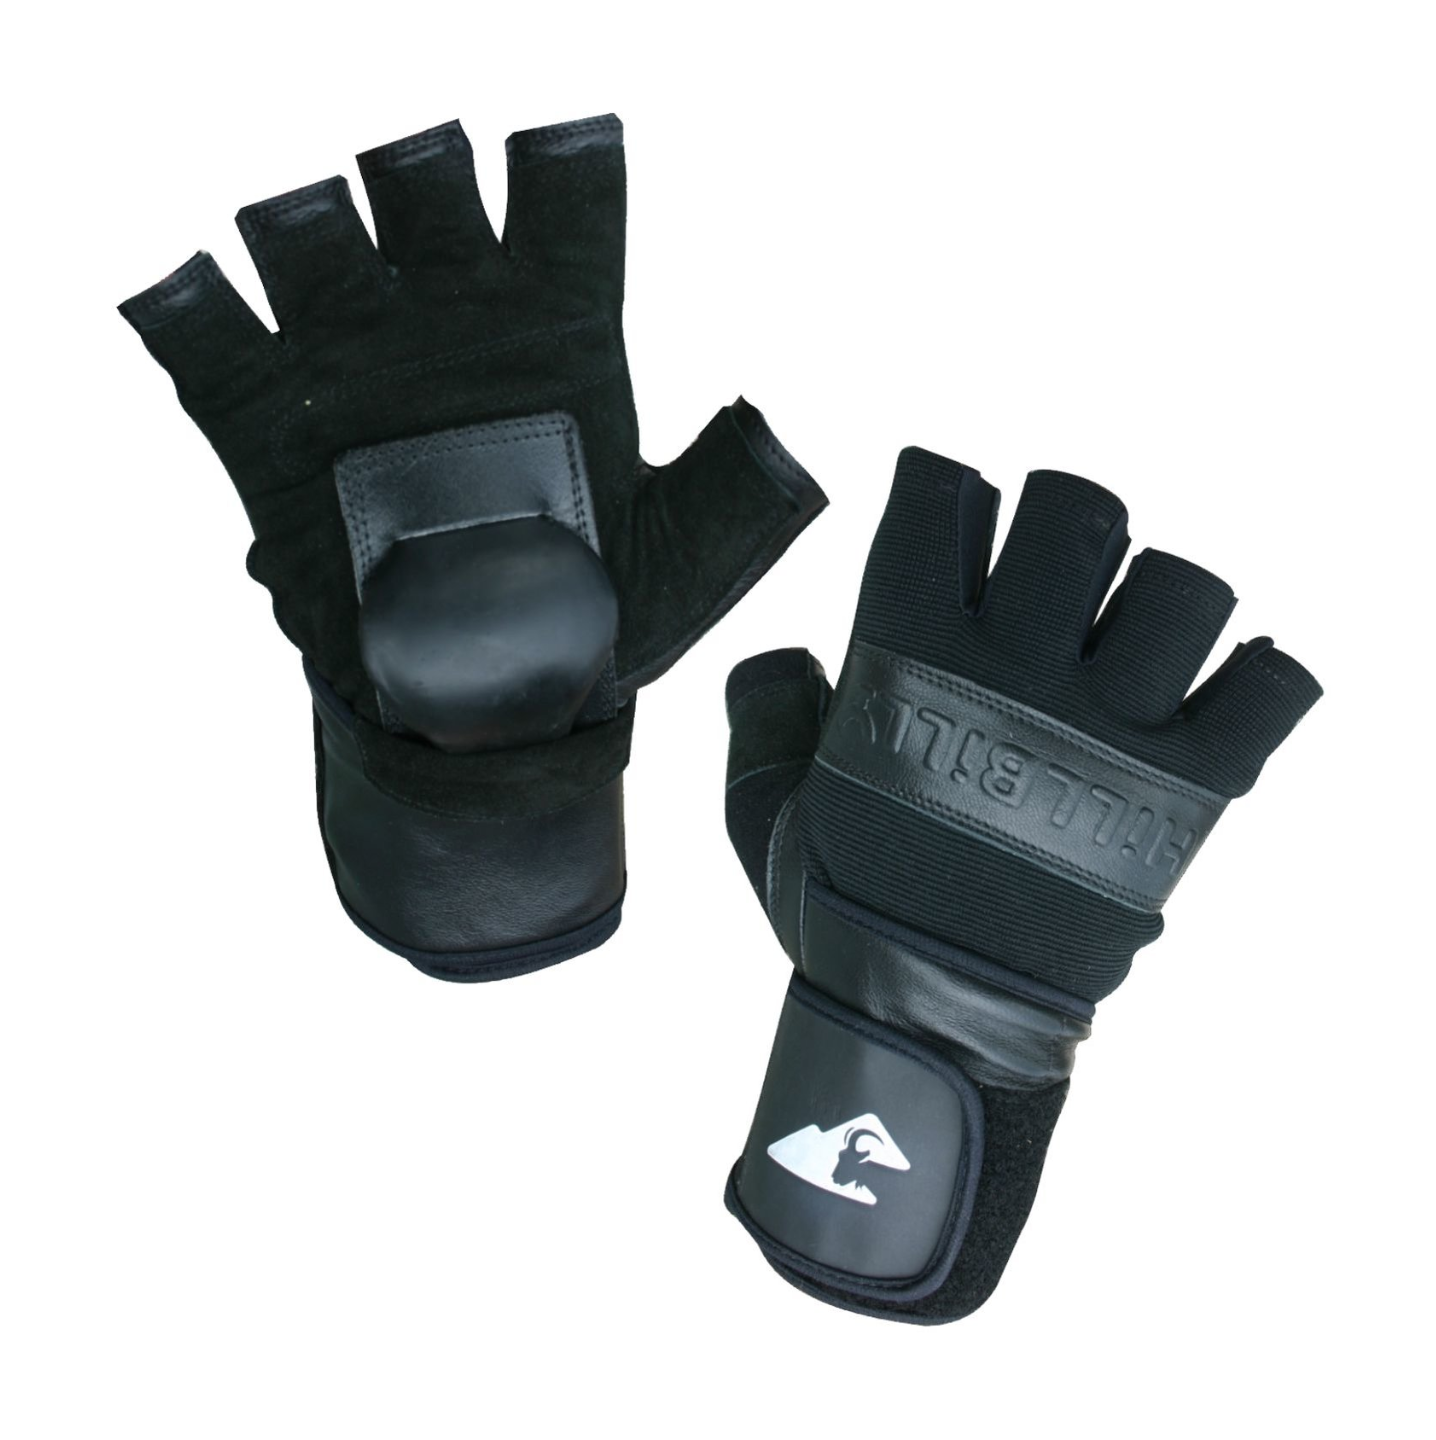 Image of HILLBILLY WRIST GUARD GLOVES - BLACK - HALF FINGER